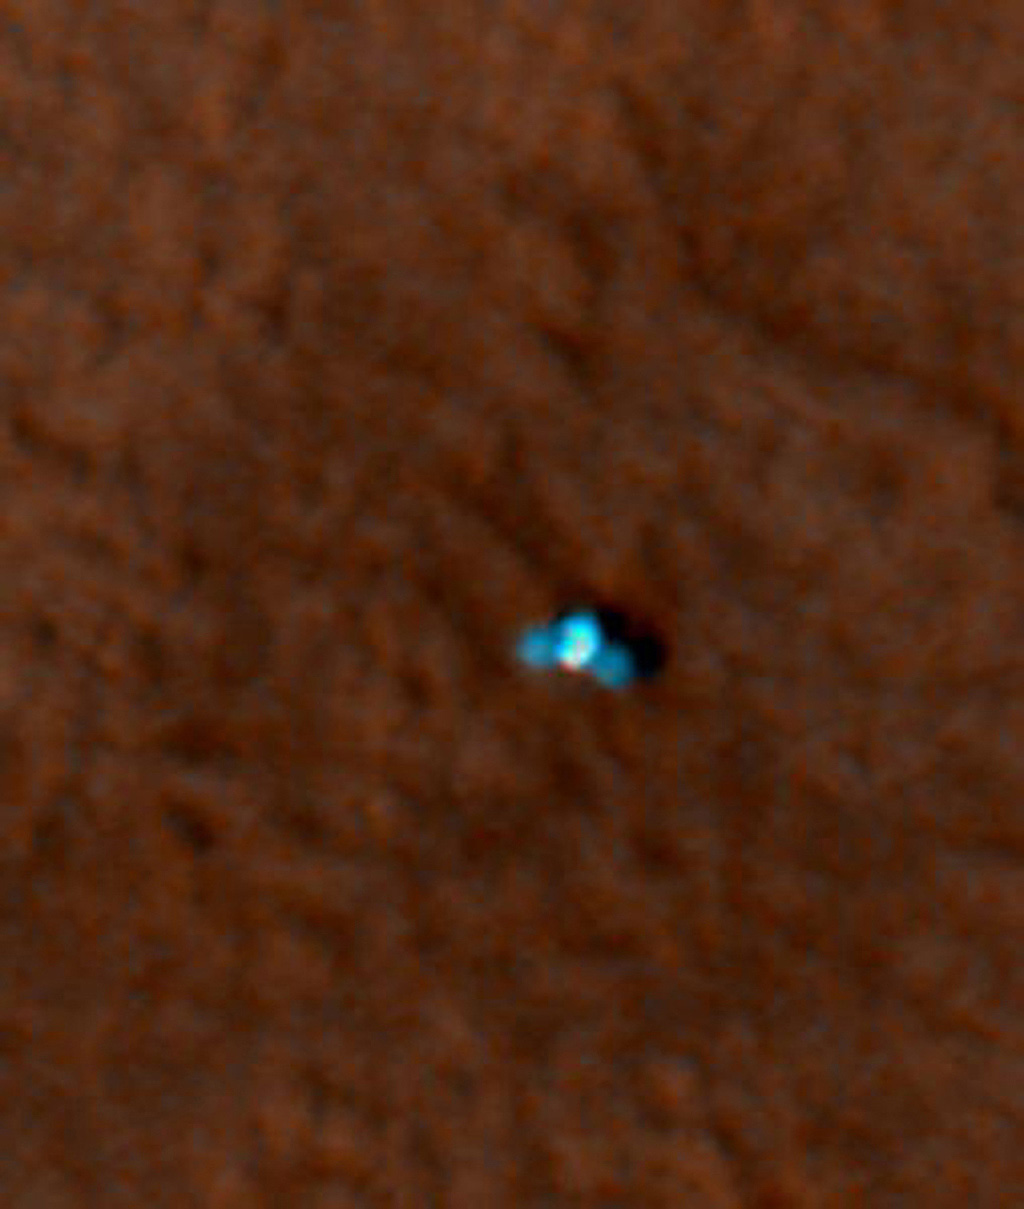 This is an enhanced-color image from Mars Reconnaissance Orbiter's High Resolution Imaging Science Experiment (HiRISE) camera. It shows the NASA's Mars Phoenix lander with its solar panels deployed on the Mars surface